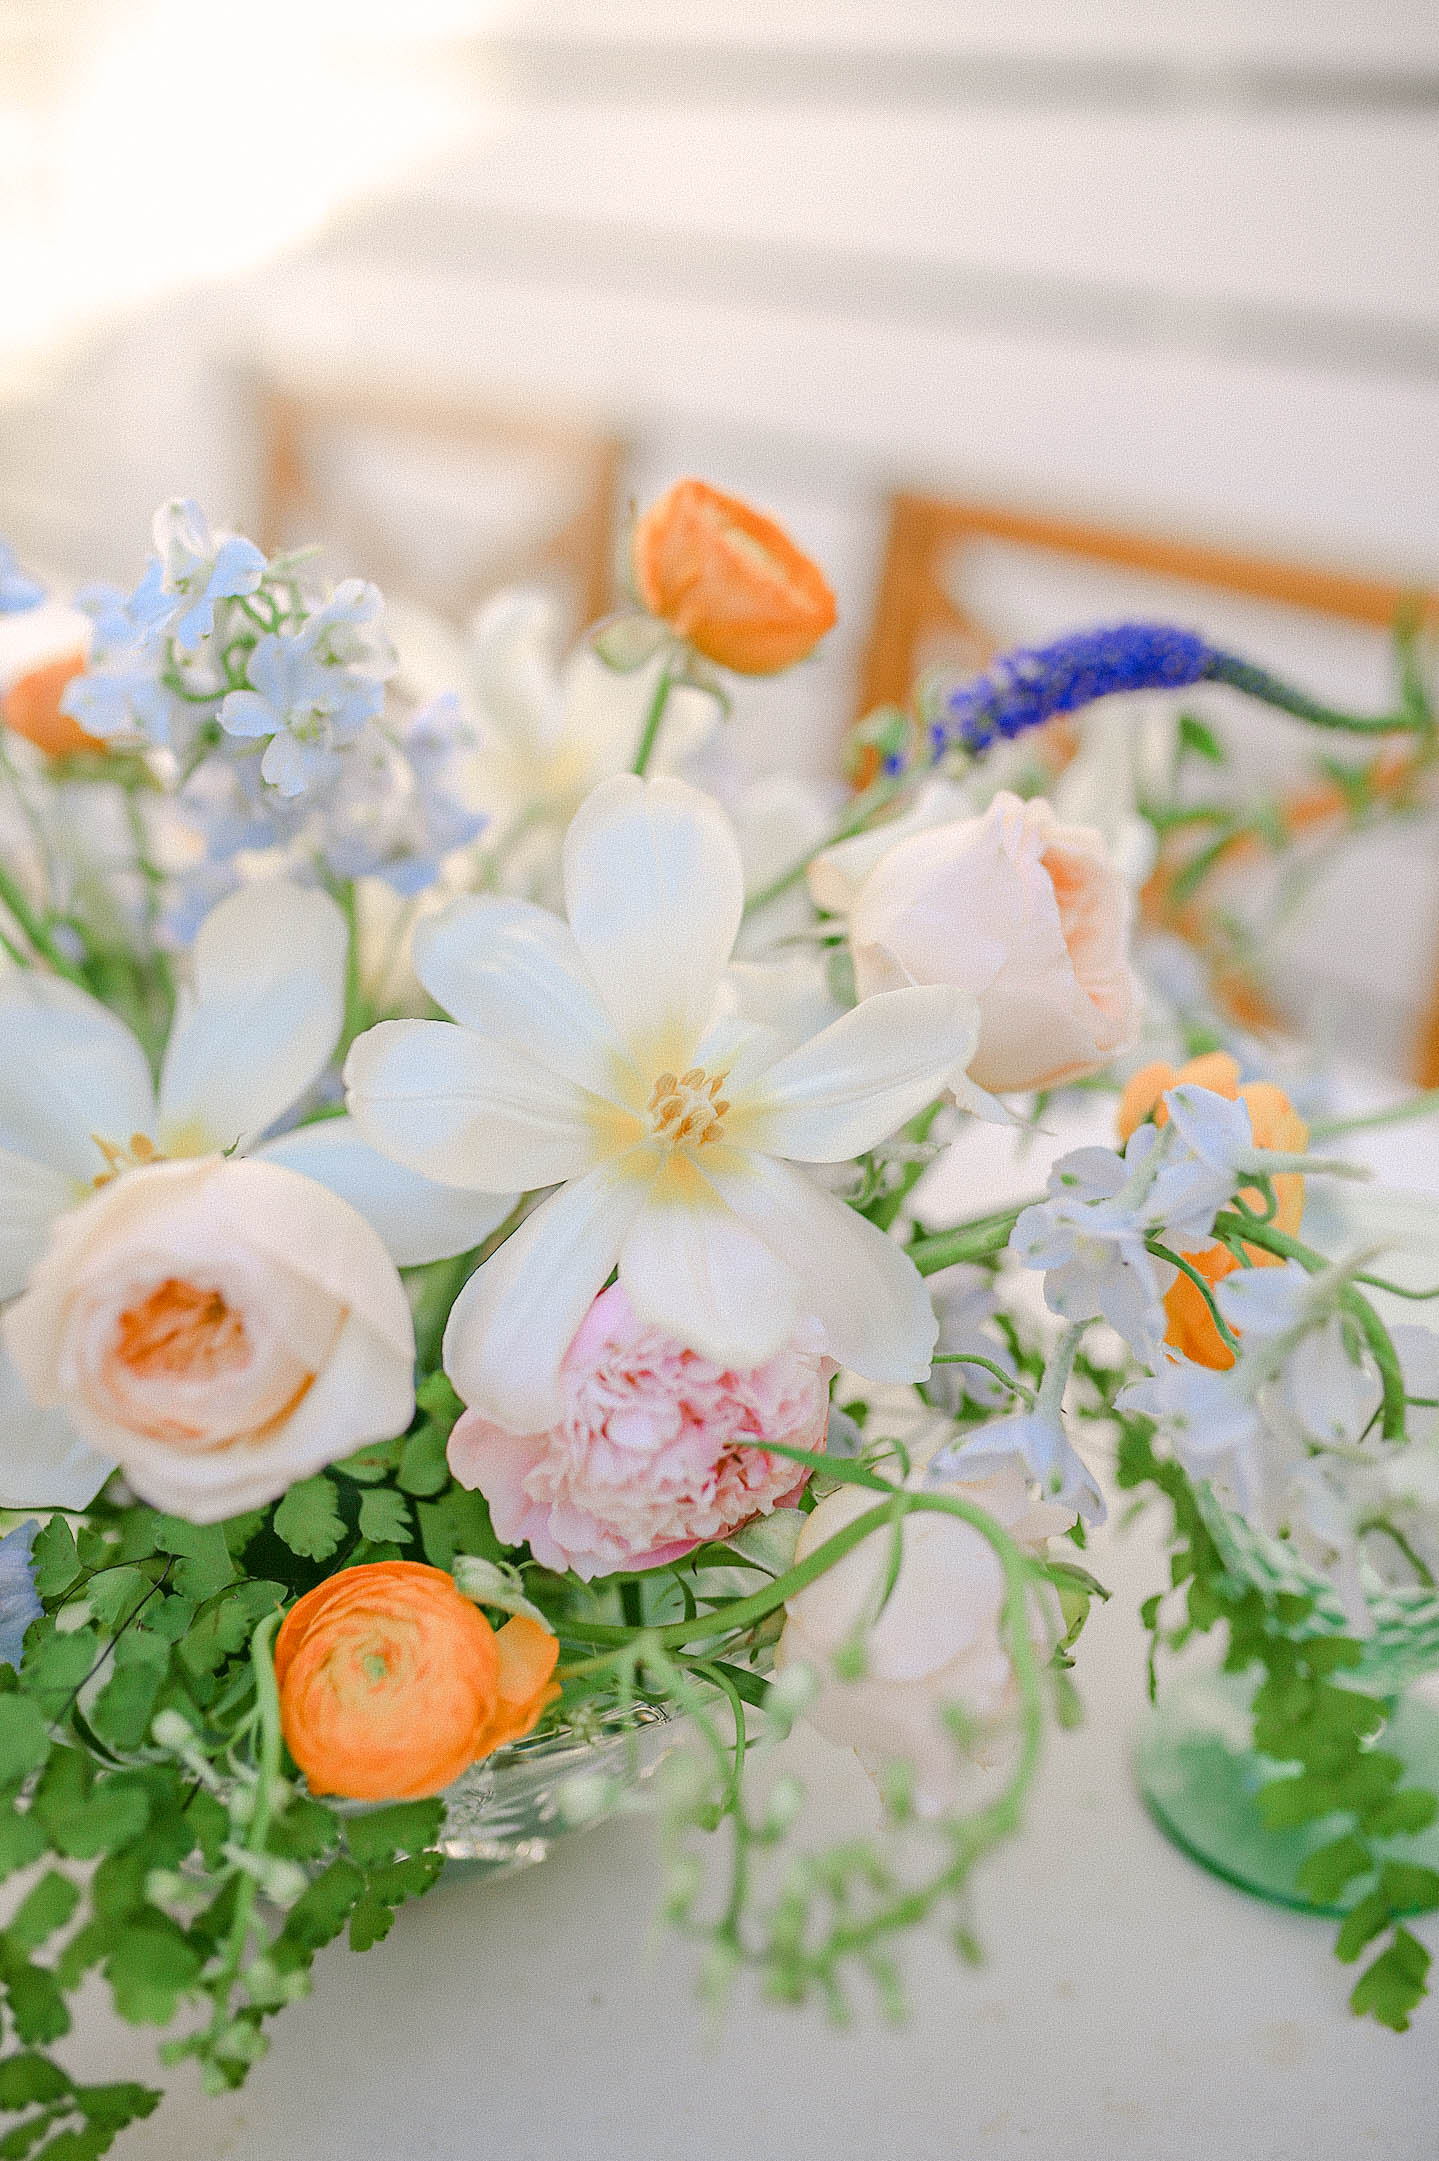 Spring Floral Arrangements | Orange Ranunculus